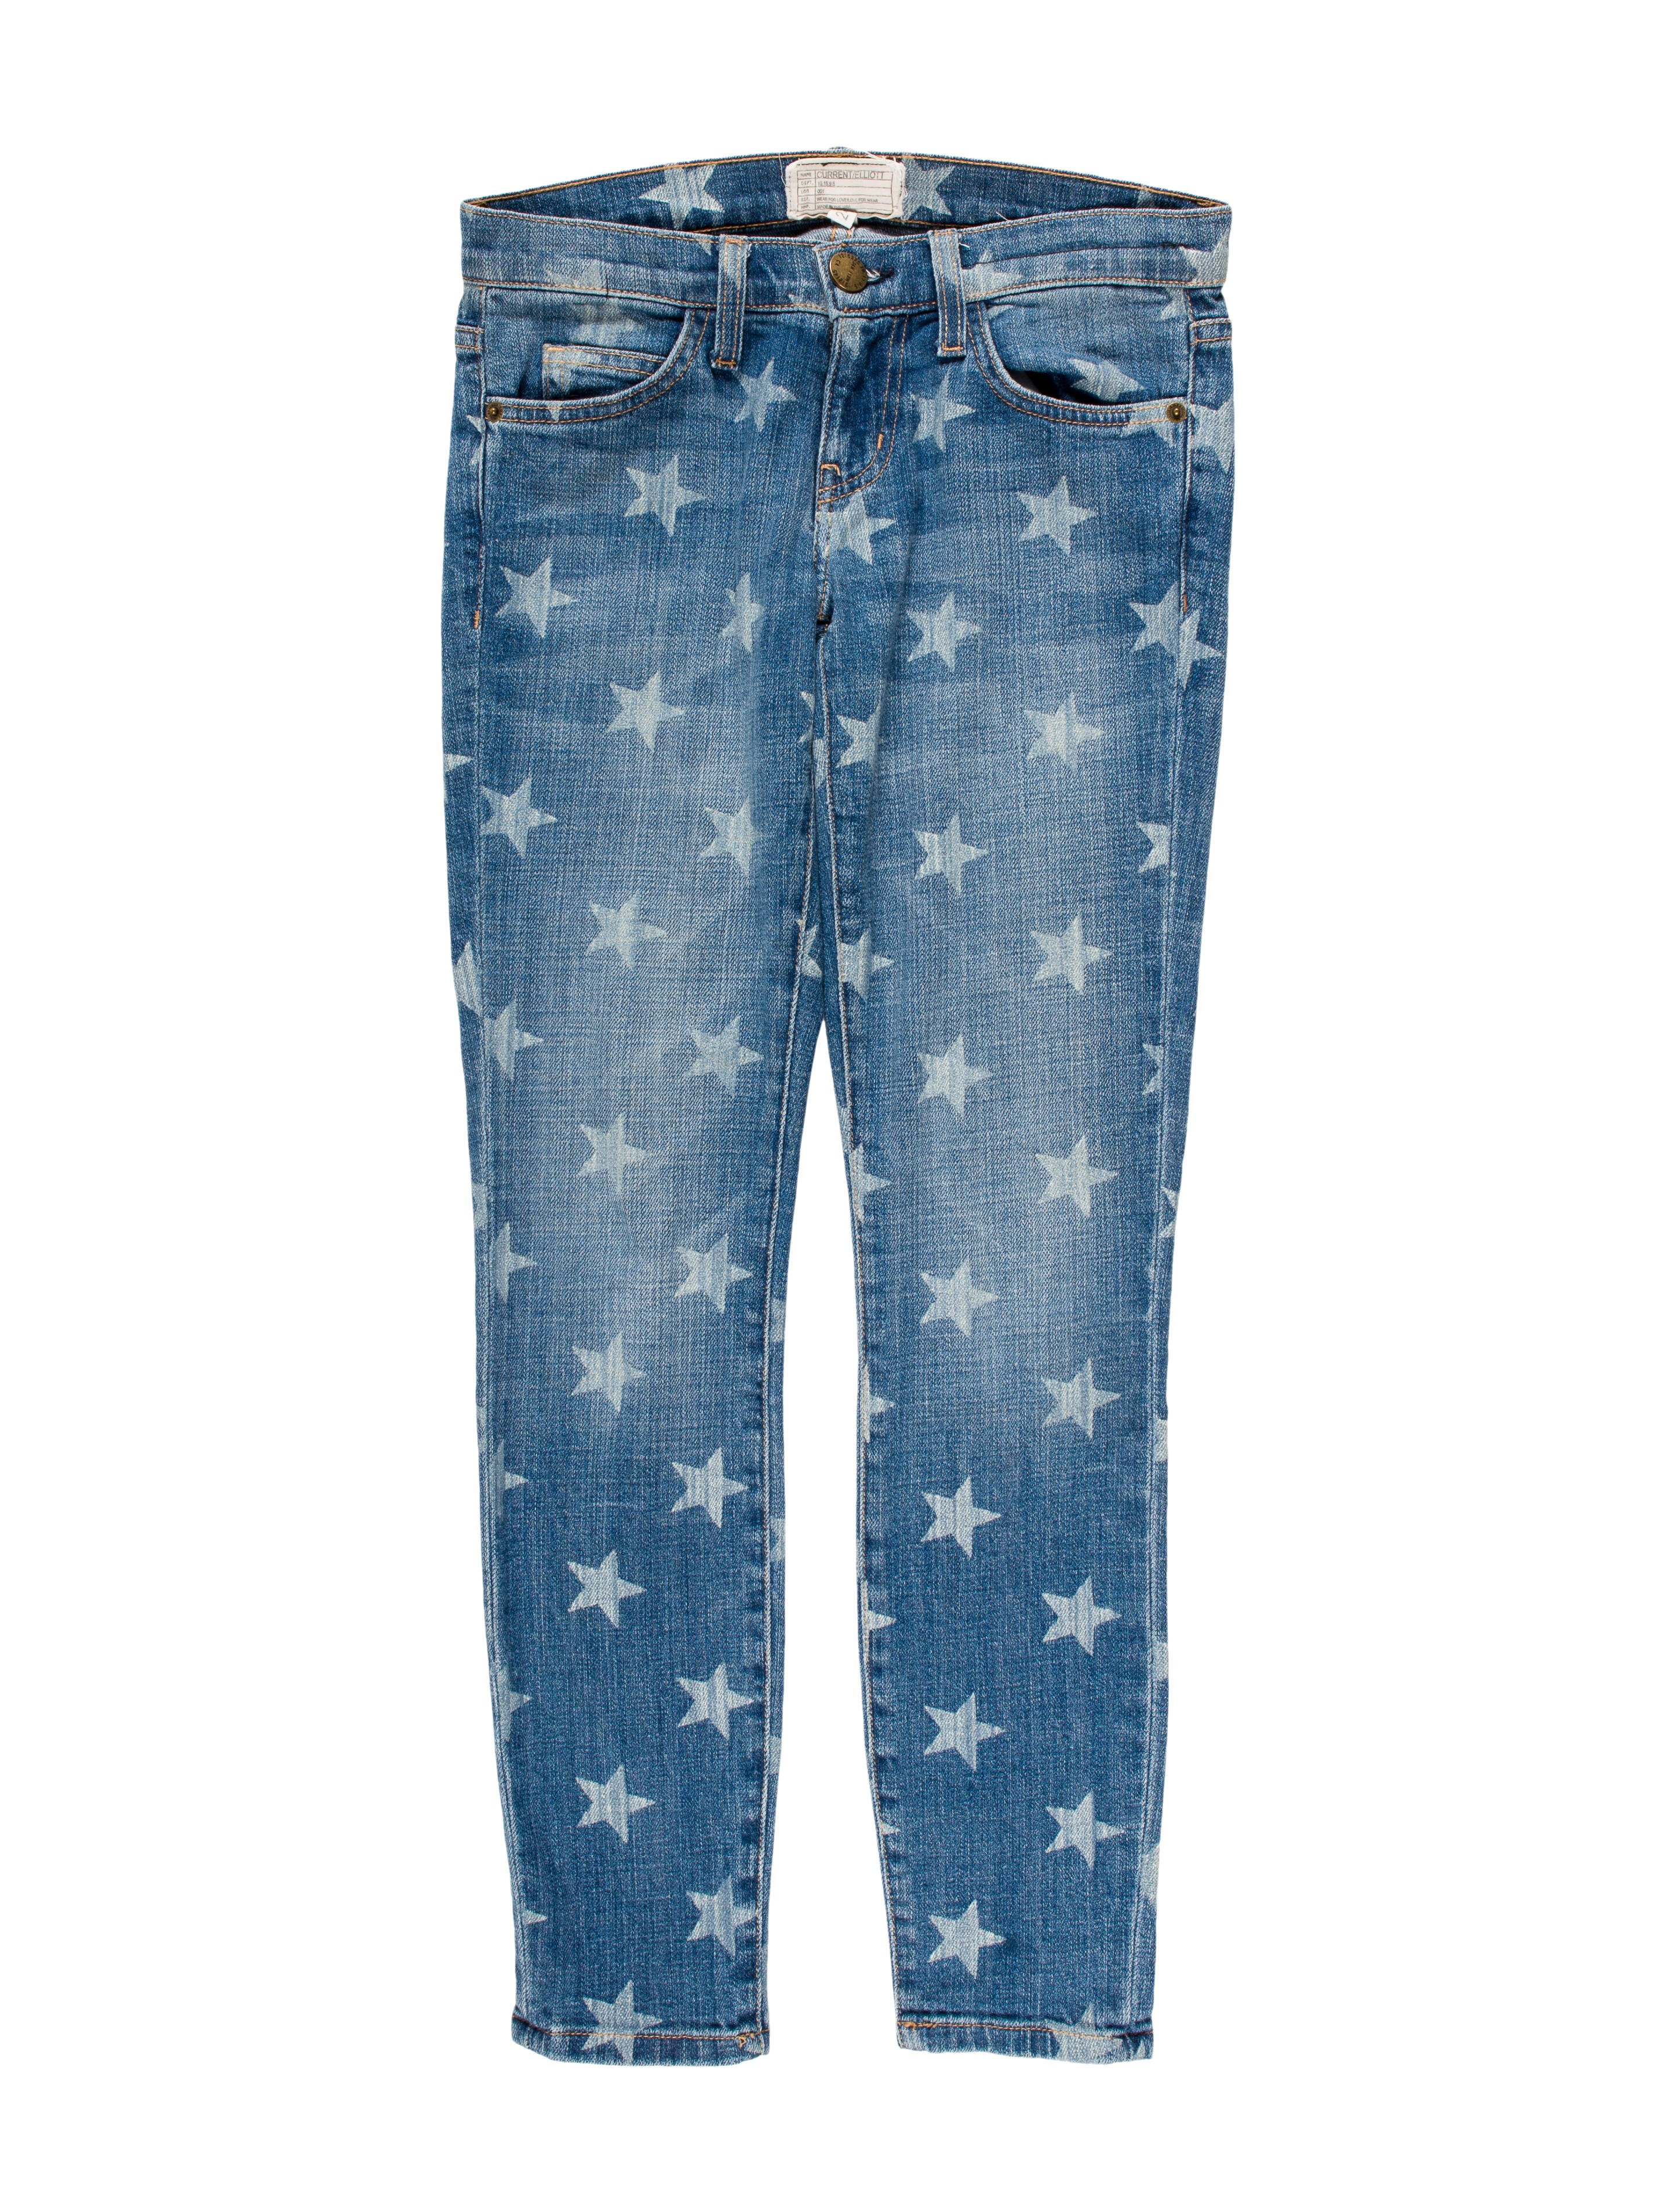 Contemporary Accessories Home Decor Current Elliott Star Print Skinny Jeans Clothing